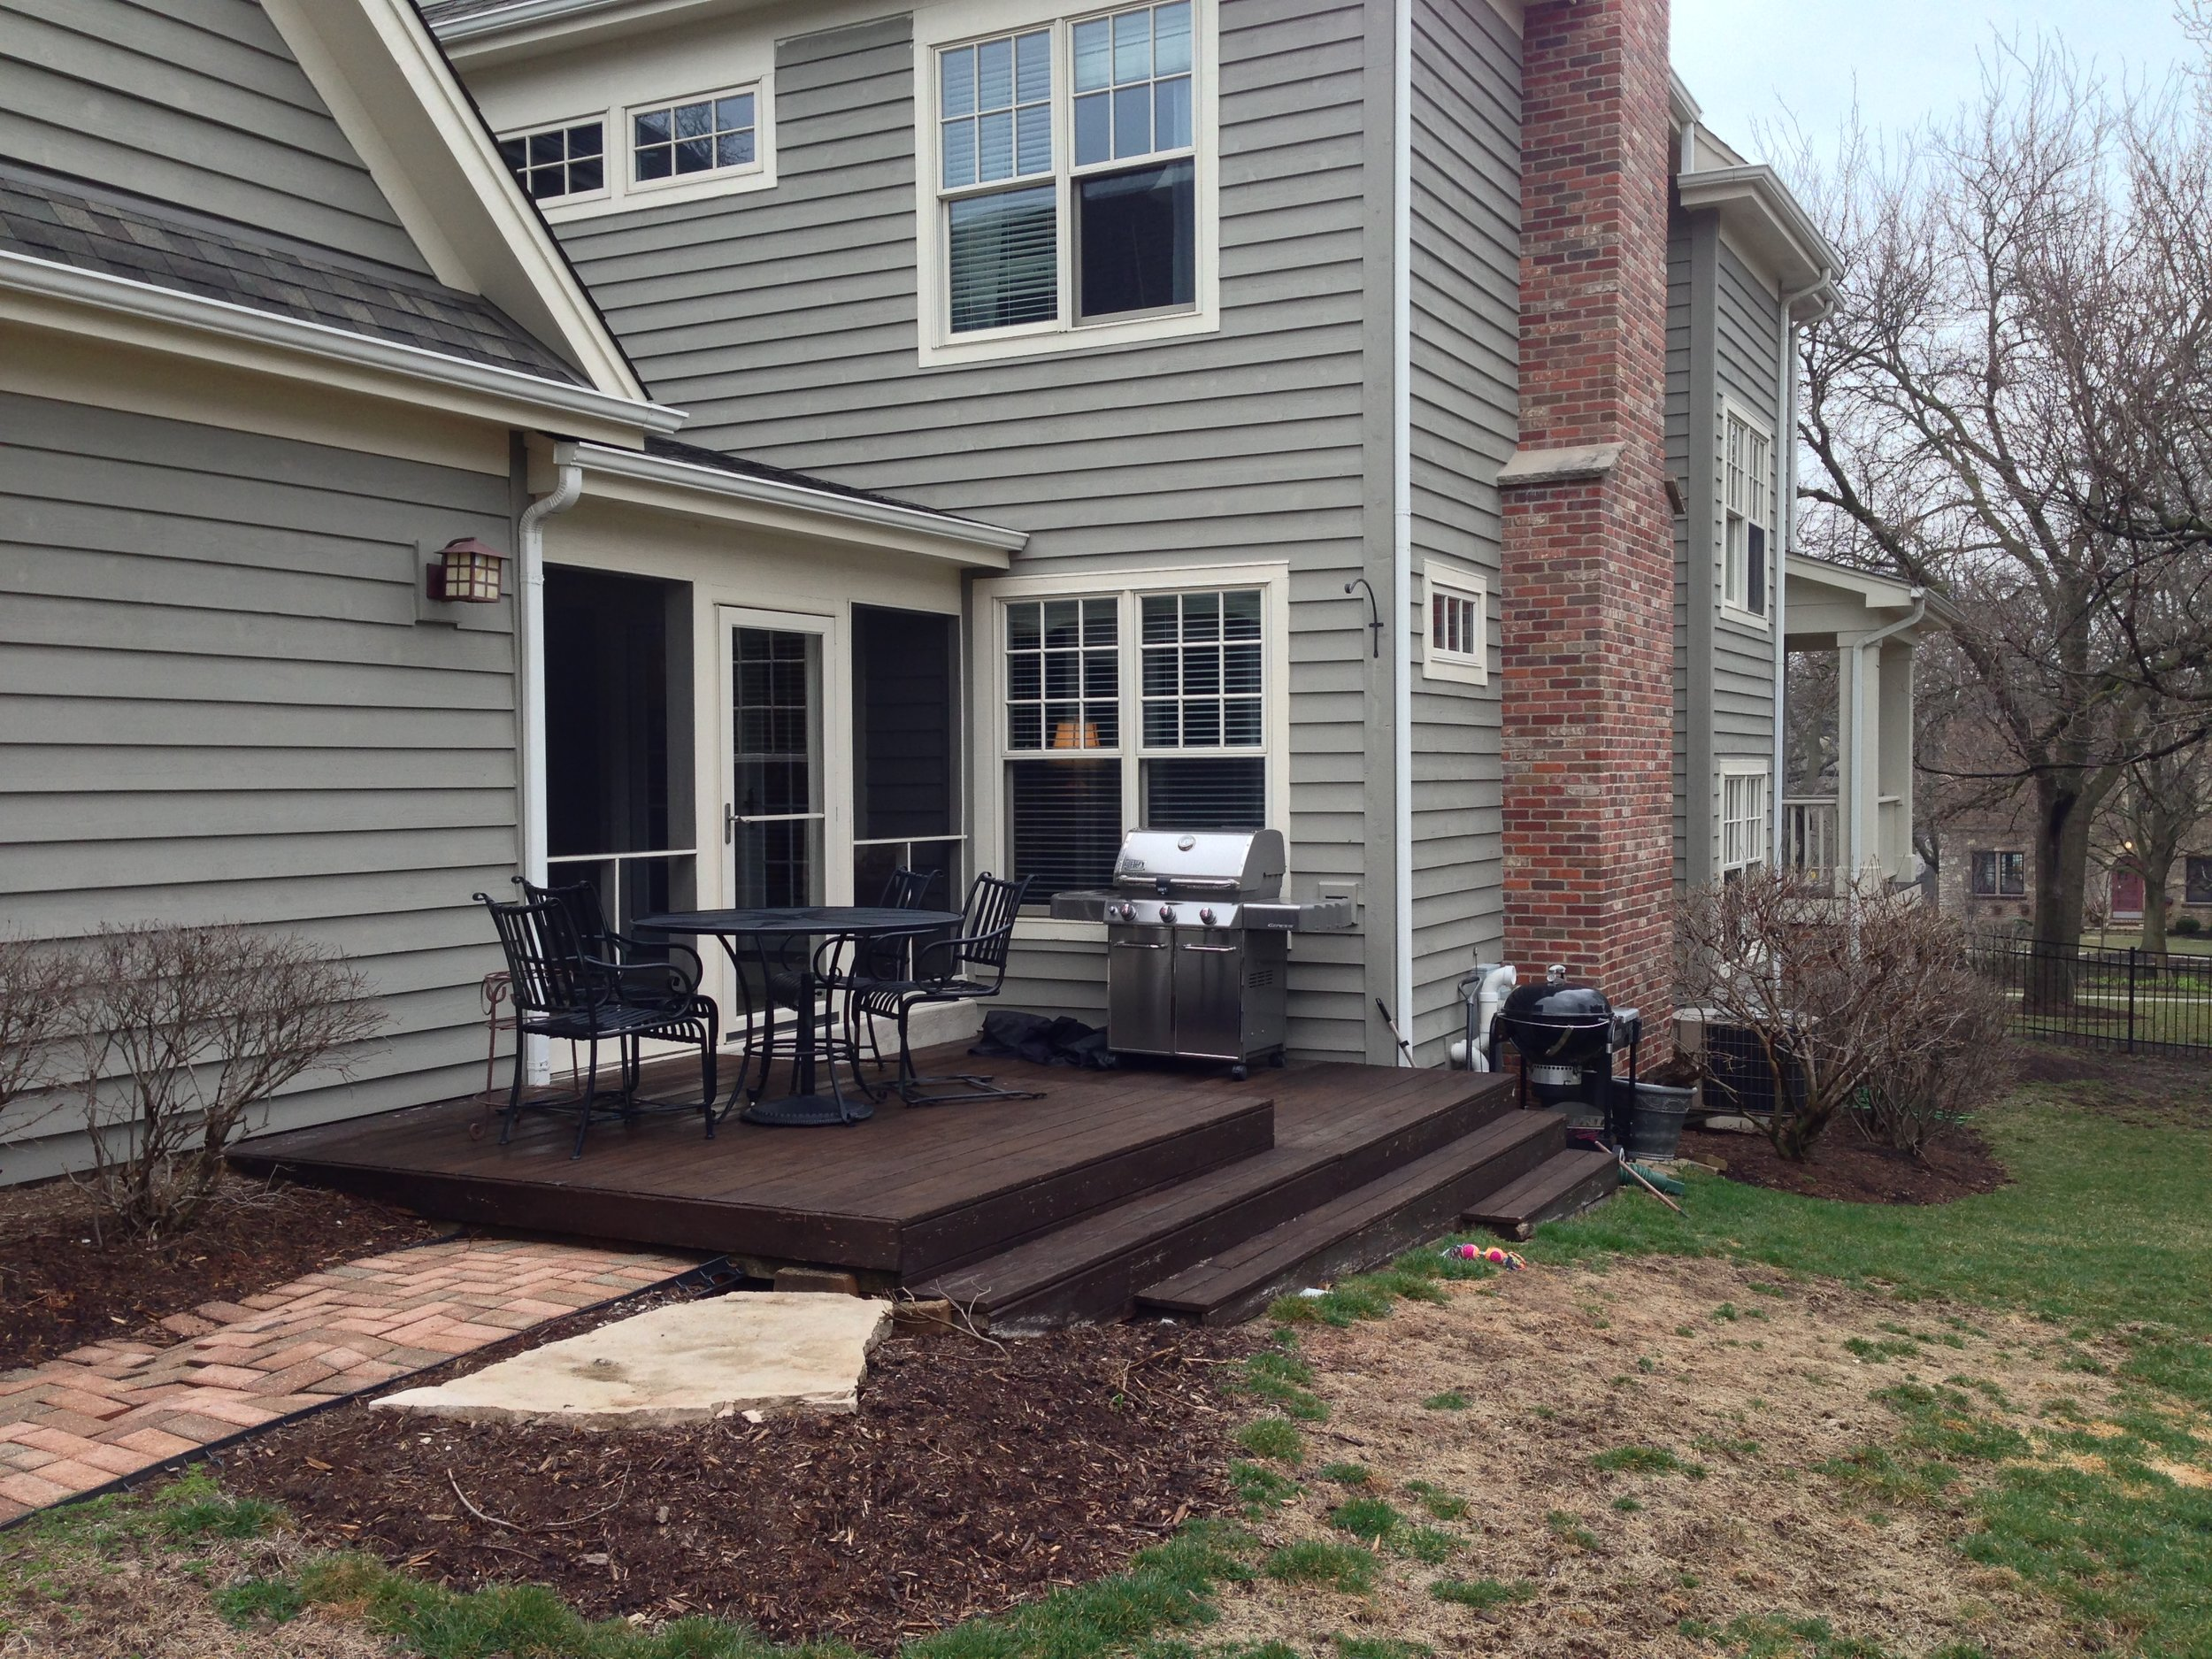 Patio landscape design before renovation in South Elgin, IL